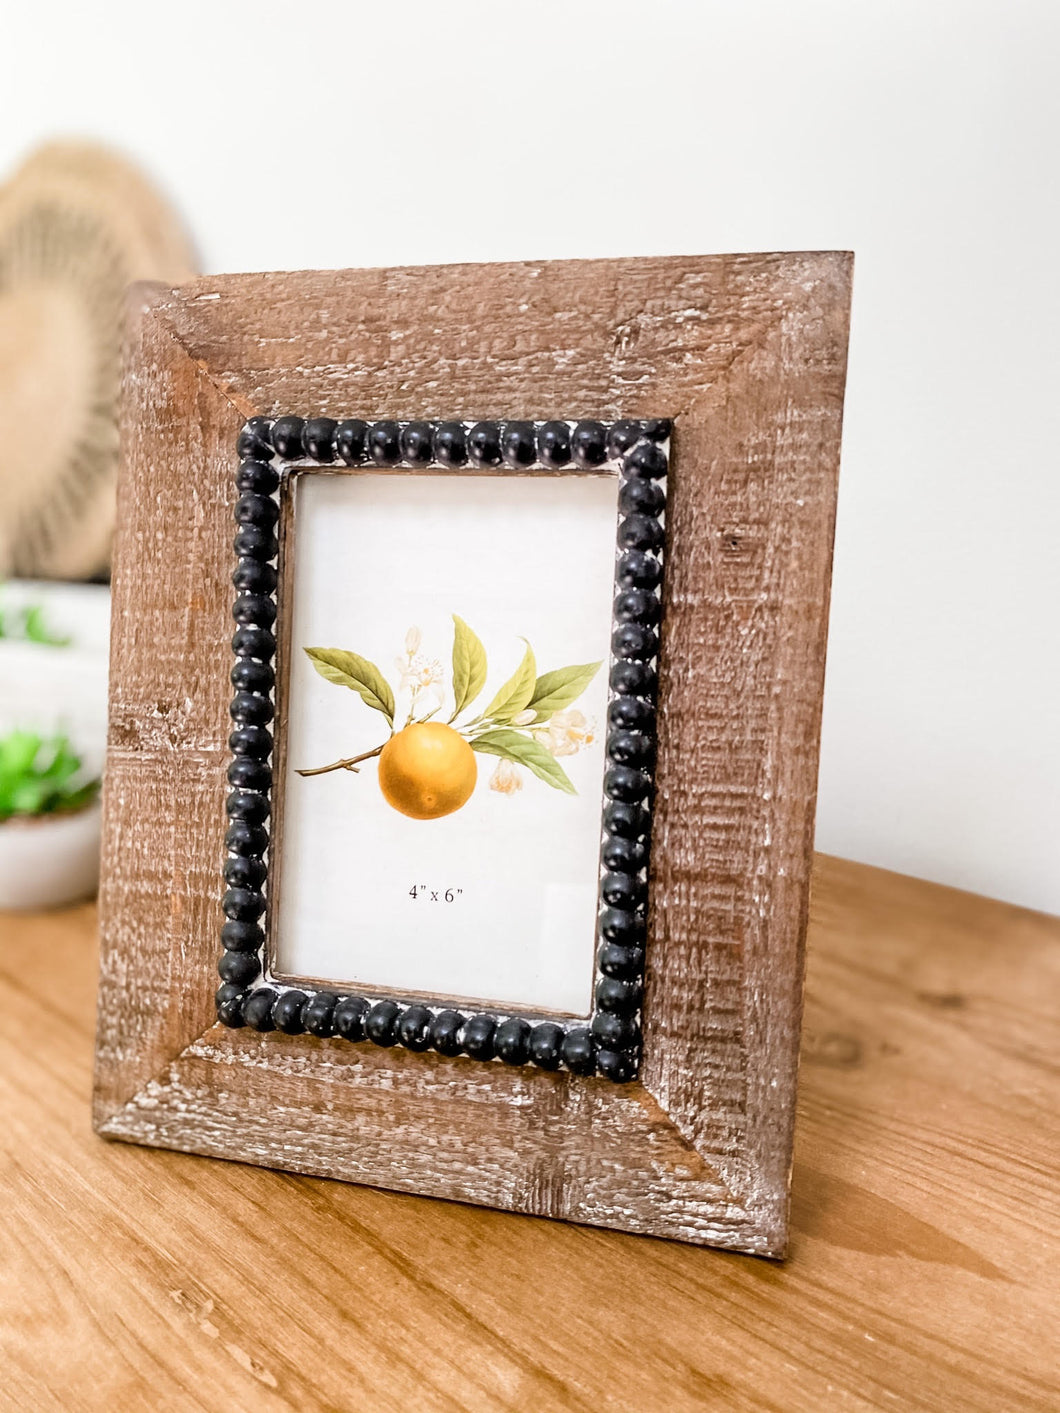 8x10 Wood Photo Frame